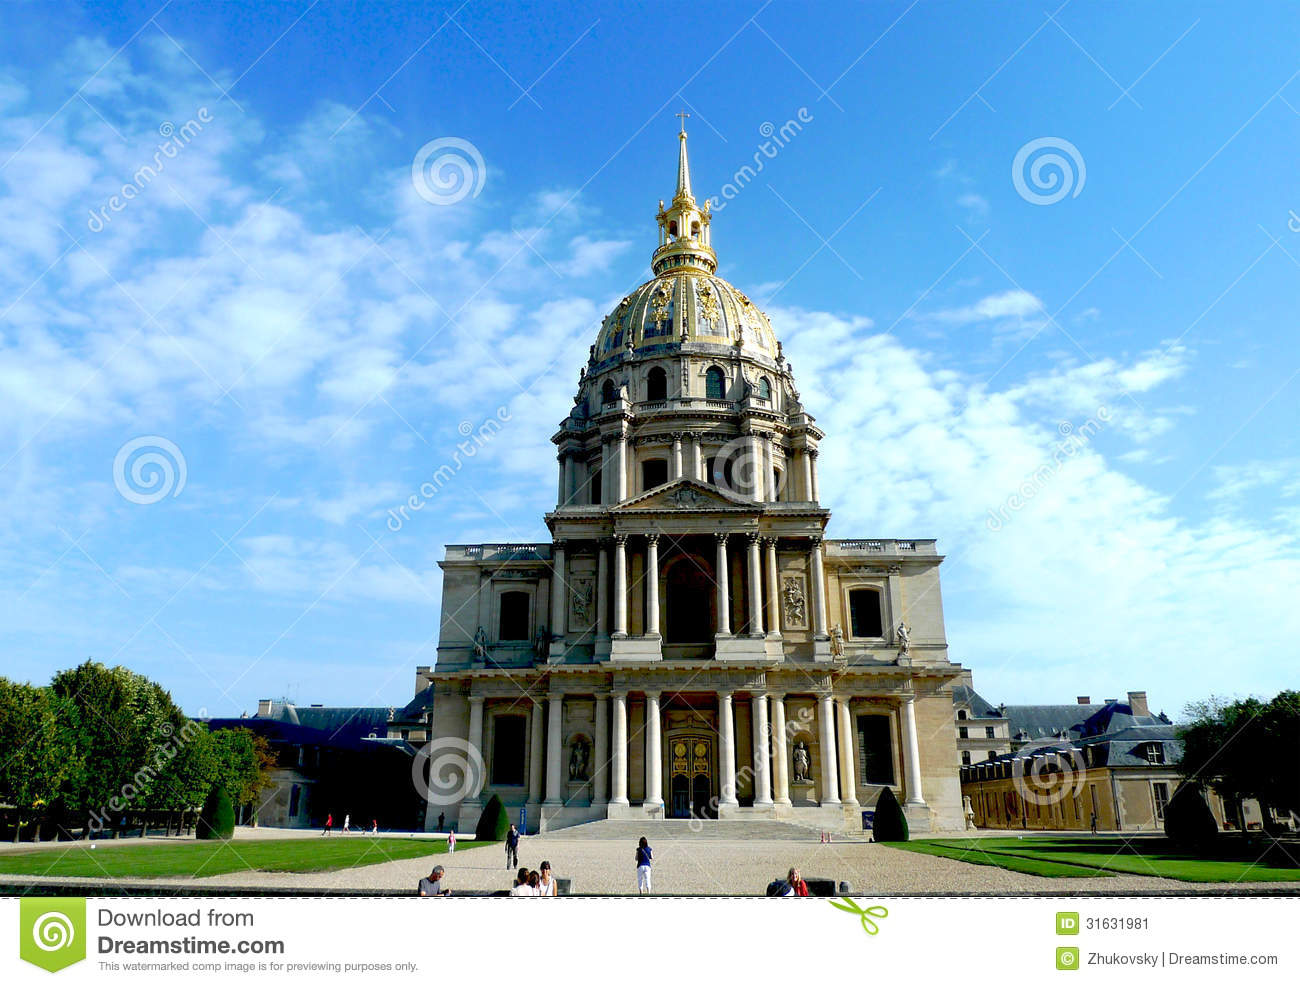 Chapel of saint-lous-des-invalides clipart #5